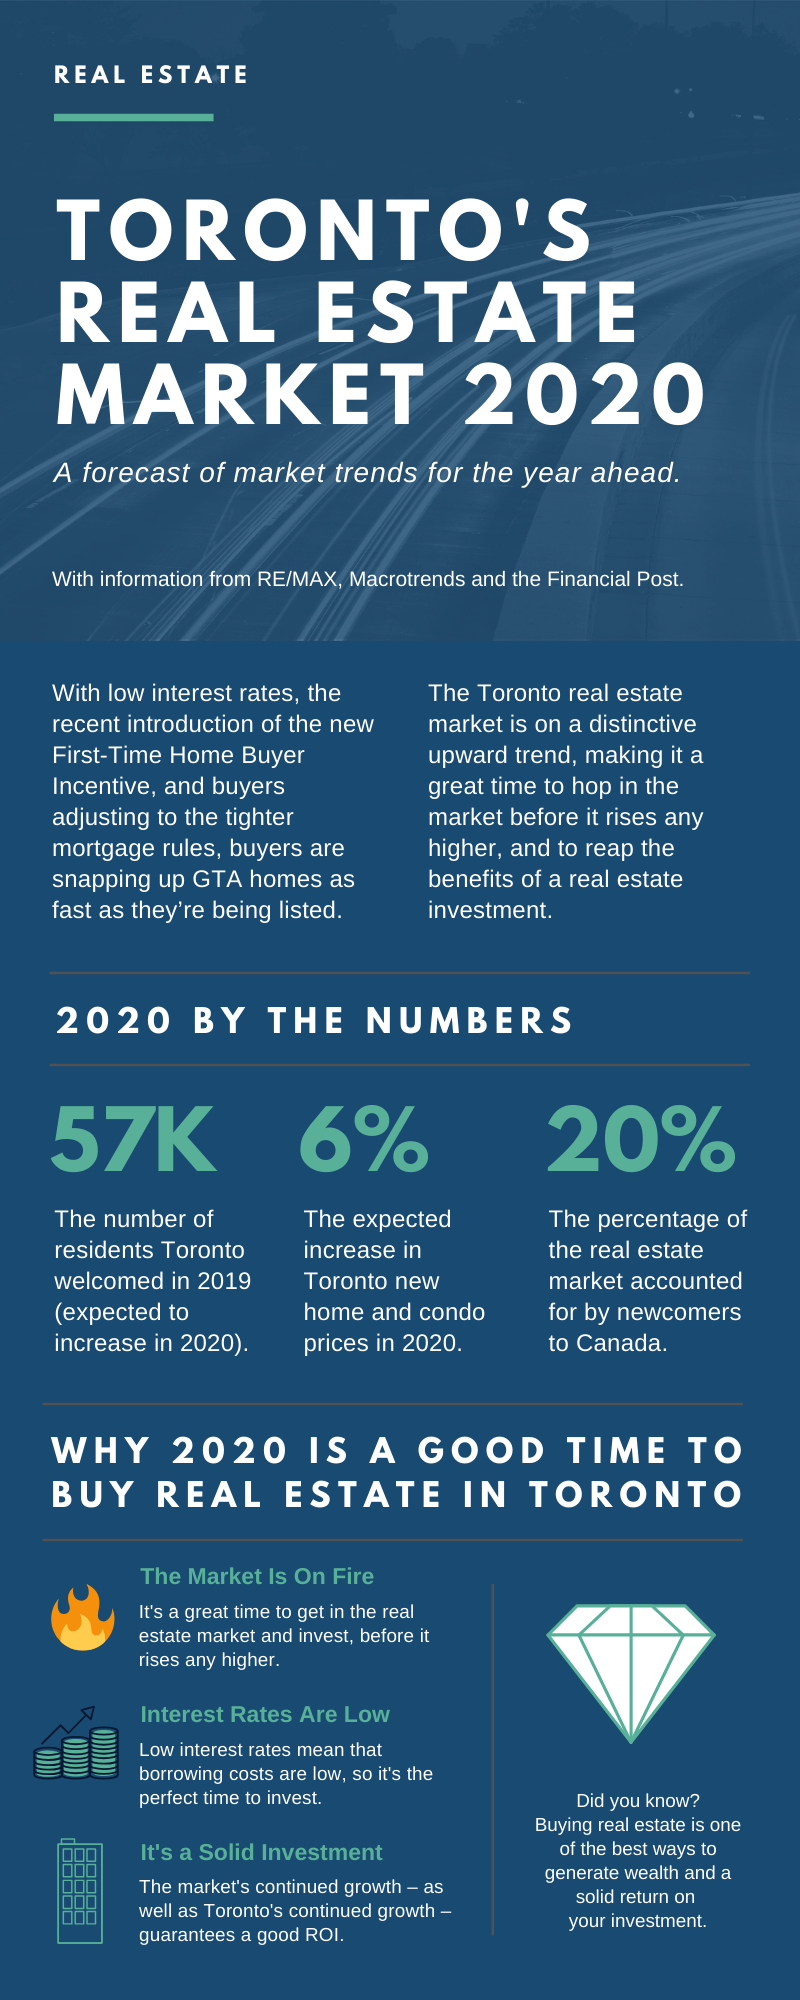 toronto's real estate market 2020